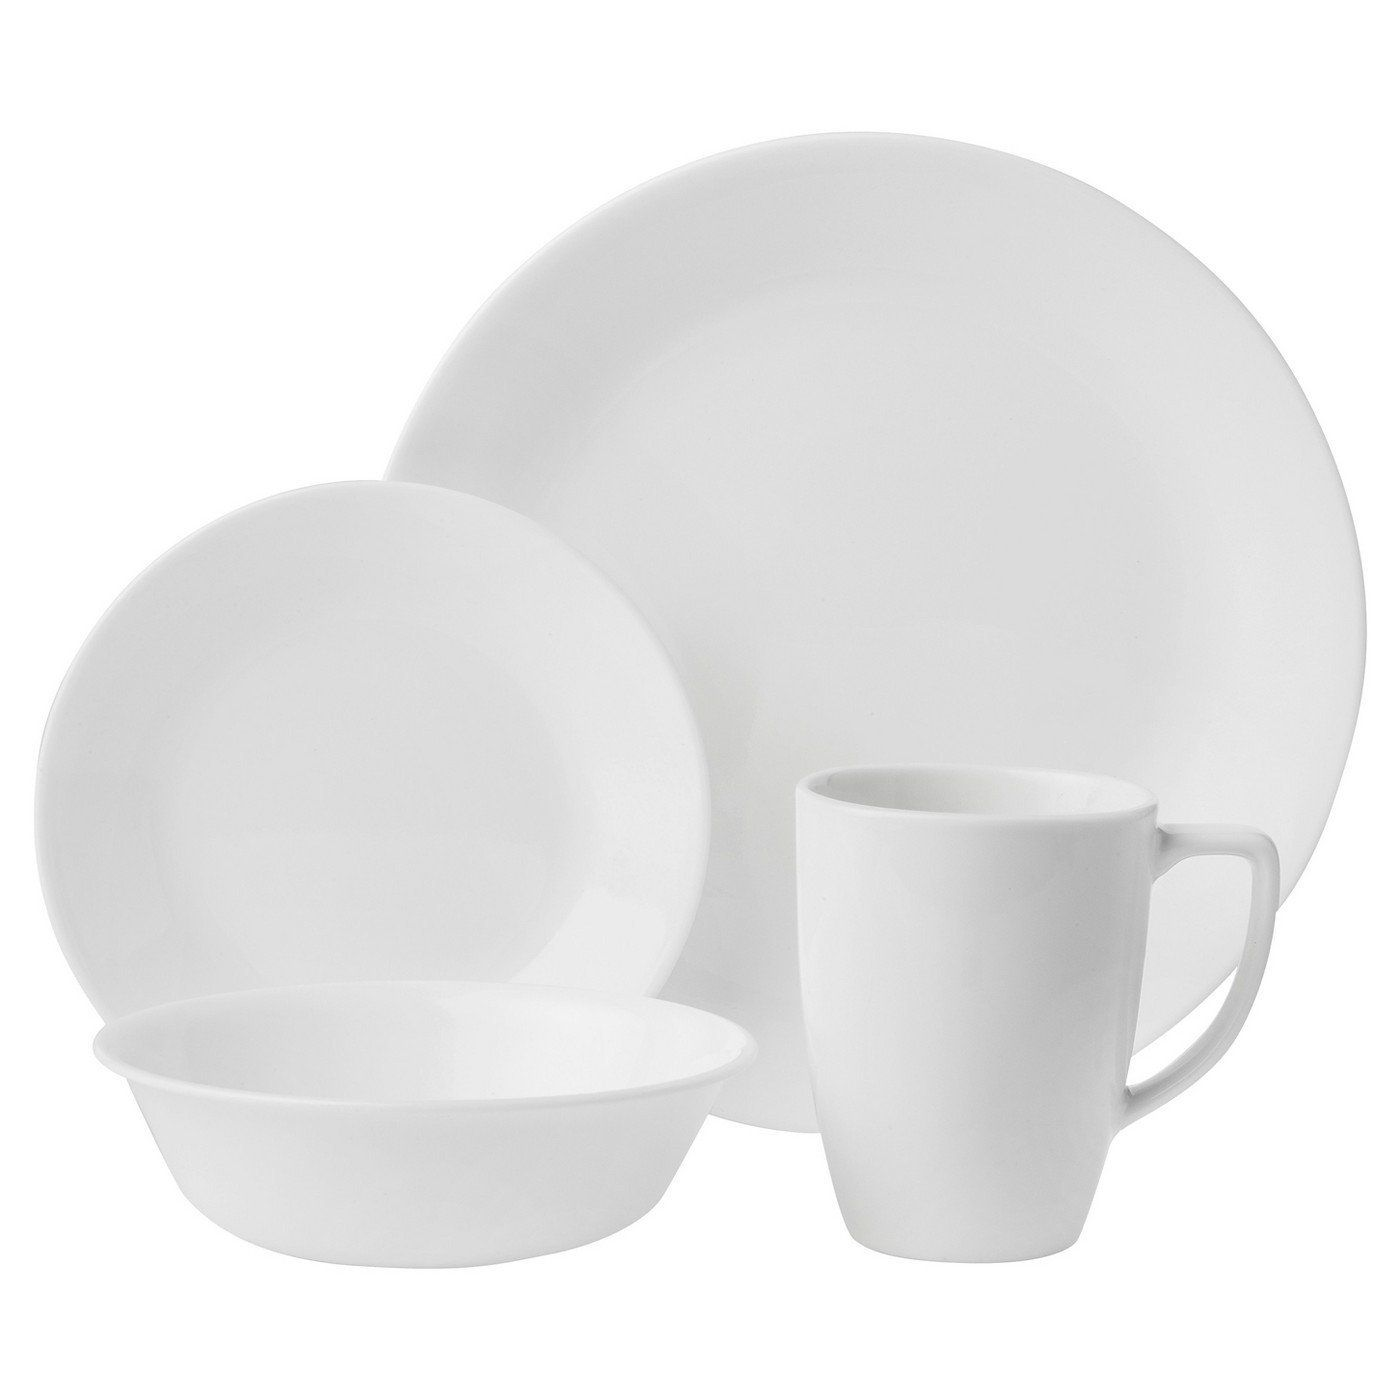 Corelle is known for making lightweight break-resistant dinnerware sets that are made of. Target  sc 1 st  HuffPost & 8 Durable Dinnerware Sets That Wonu0027t Break | HuffPost